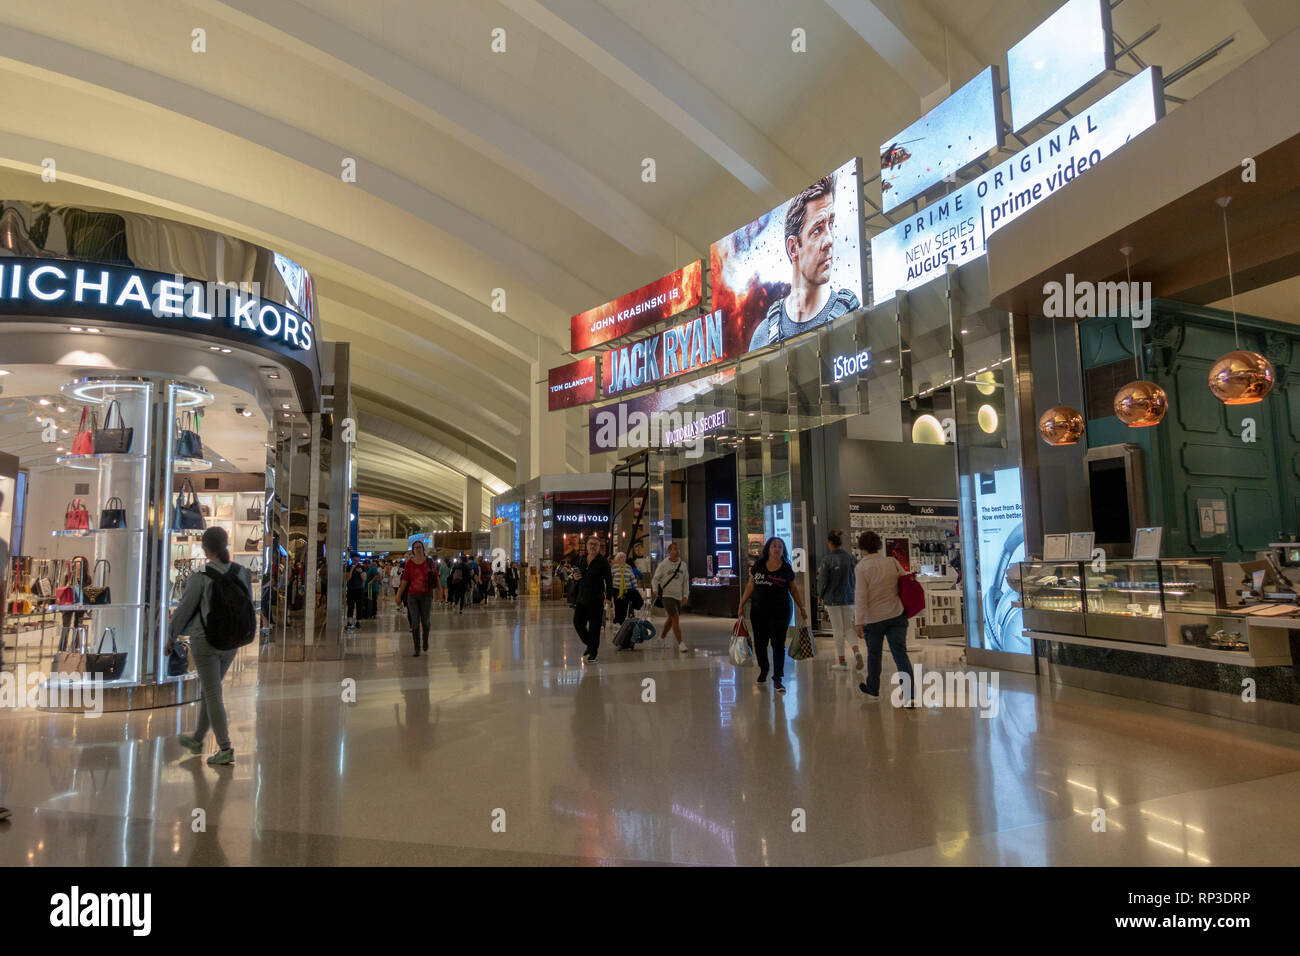 General view of retail outlets in Los Angeles International Airport (LAX), California, United States. - Stock Image